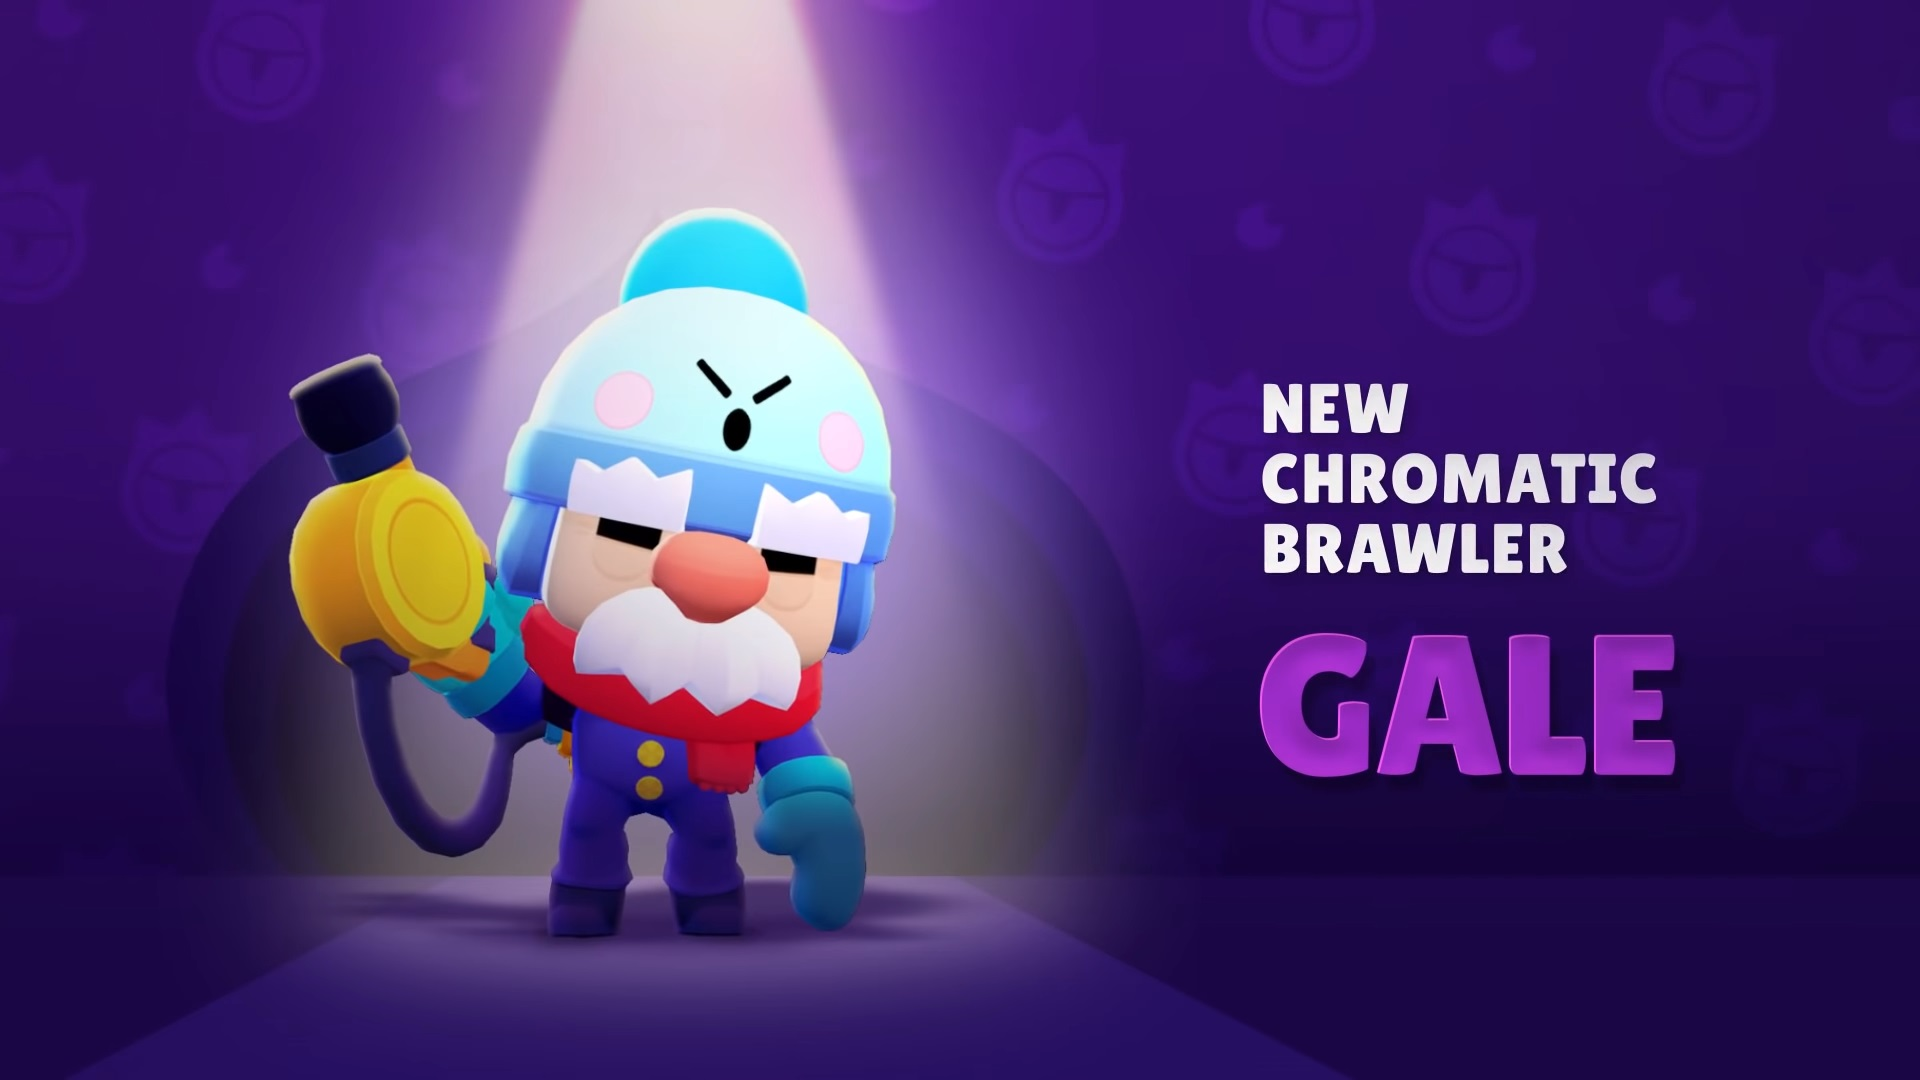 Brawl Stars Gale Guide - How to Get